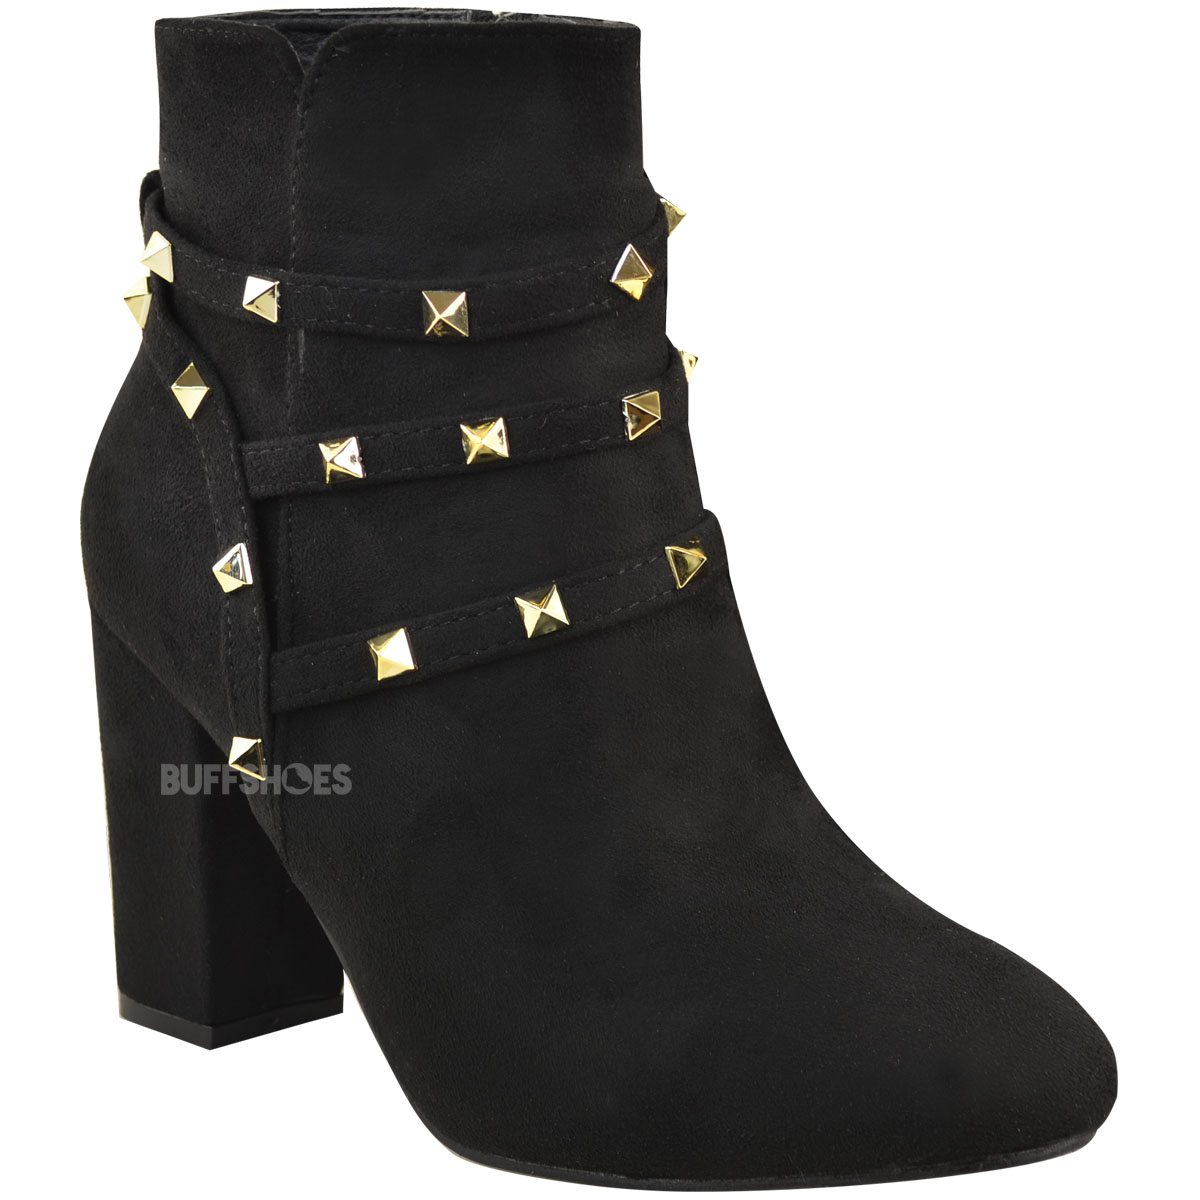 Womens Studded Block Mid Heel Winter Ankle Boots Size